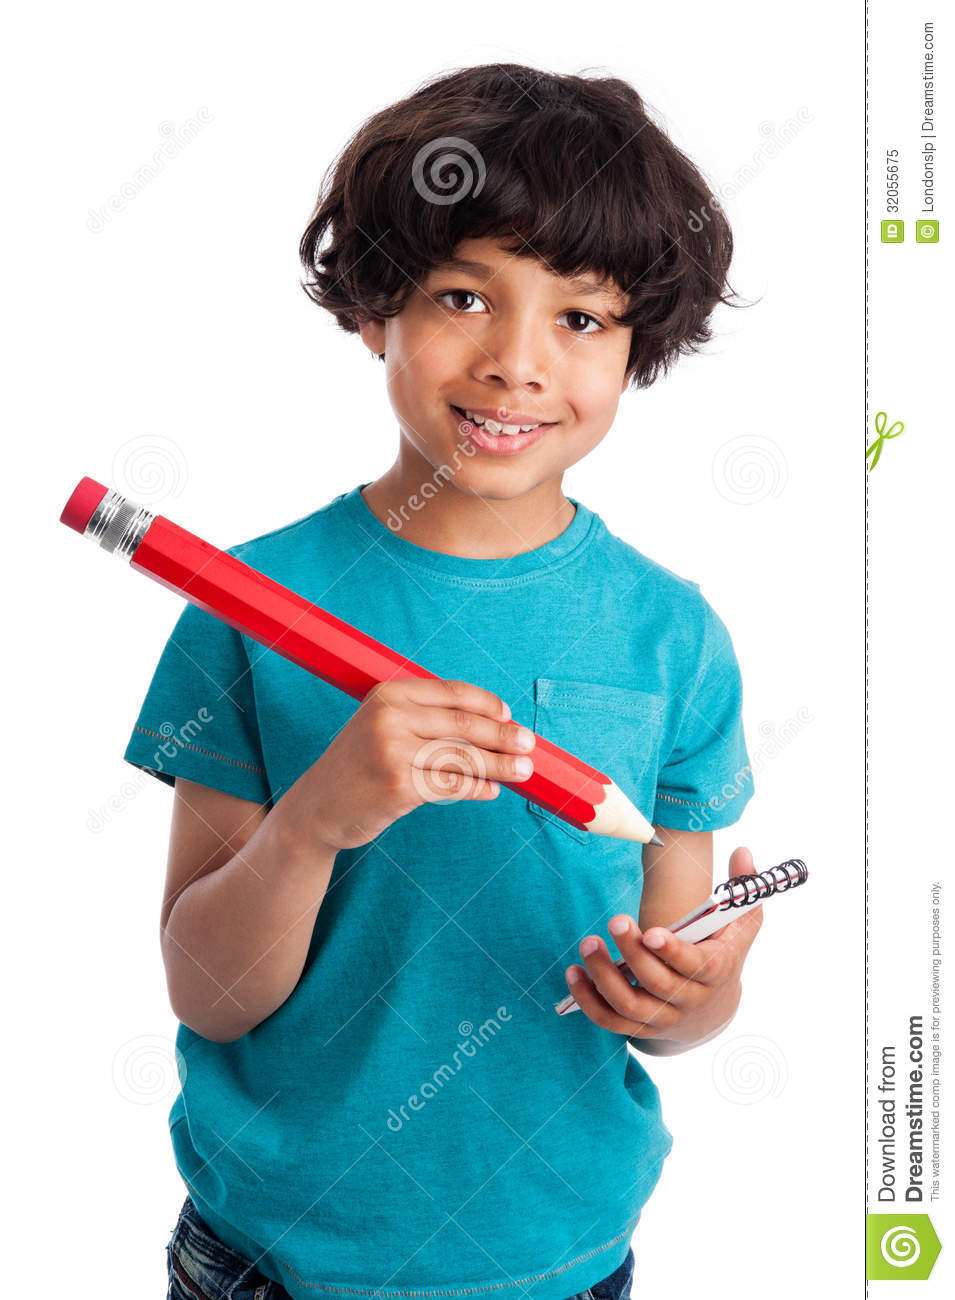 Cute Mixed Race Kid With Giant Pencil Royalty Free Stock